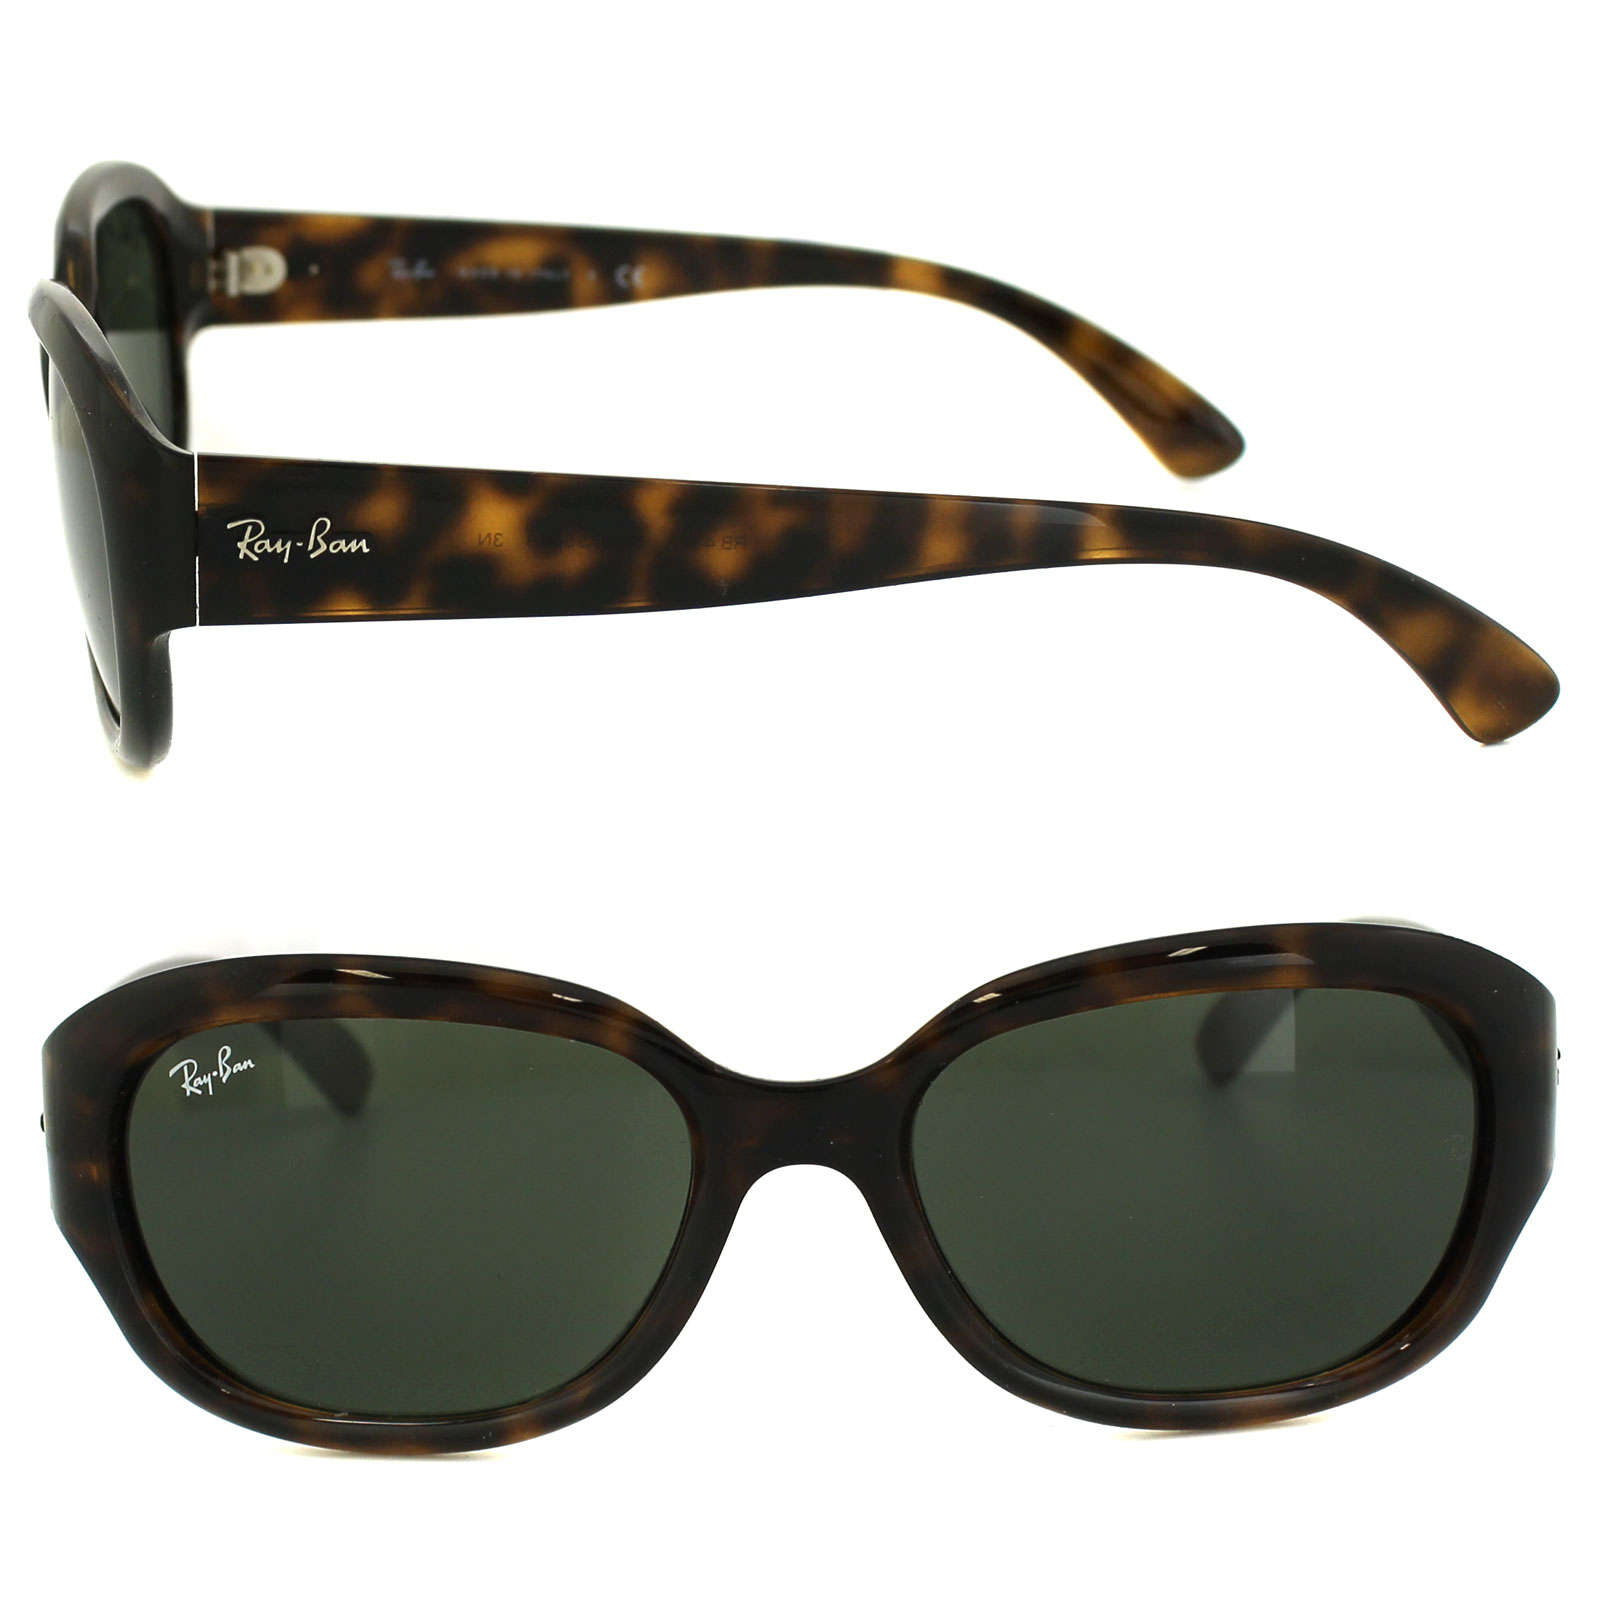 d53ea355c21aaf ray ban 4198,ray ban rb4198 601 55 18 noir medium